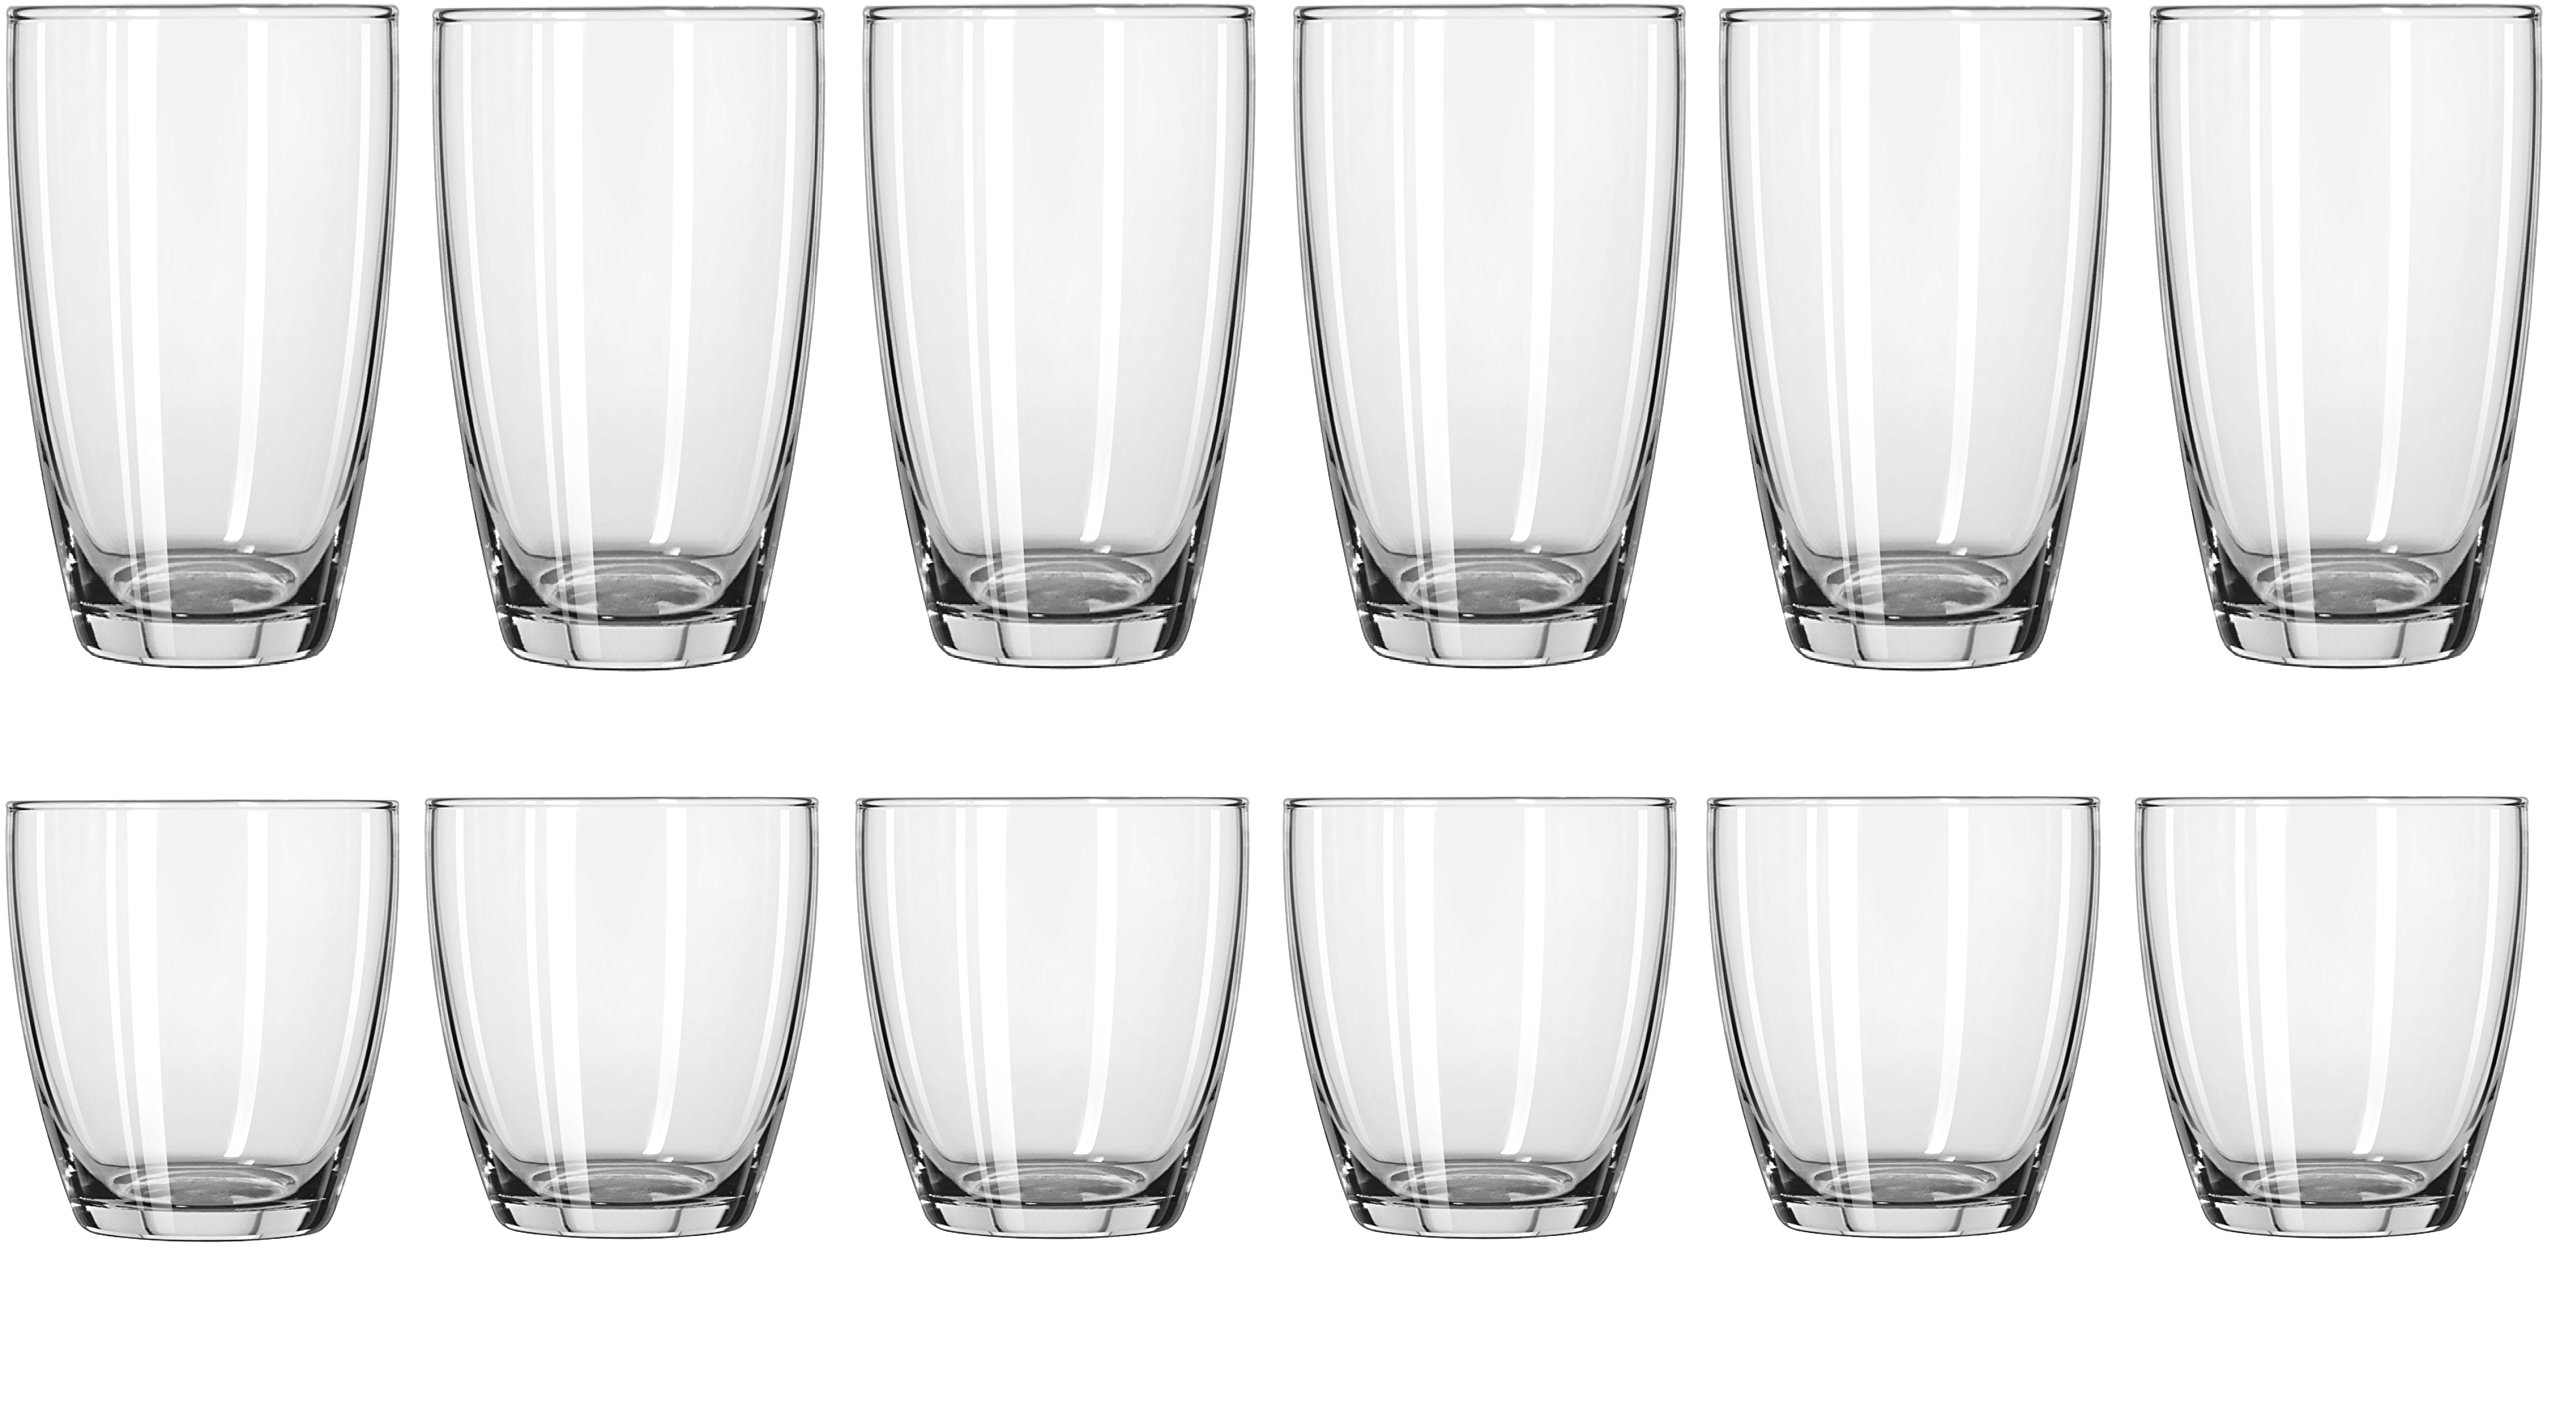 Circleware 44539 Smooth Huge Set of 12, 6-16oz Drinking Glasses & 6-13oz Whiskey Glass, Kitchen Glassware for Water, Beer, Wine Liquor Beverage, 16oz&13oz, Smooth 12pc by Circleware (Image #3)